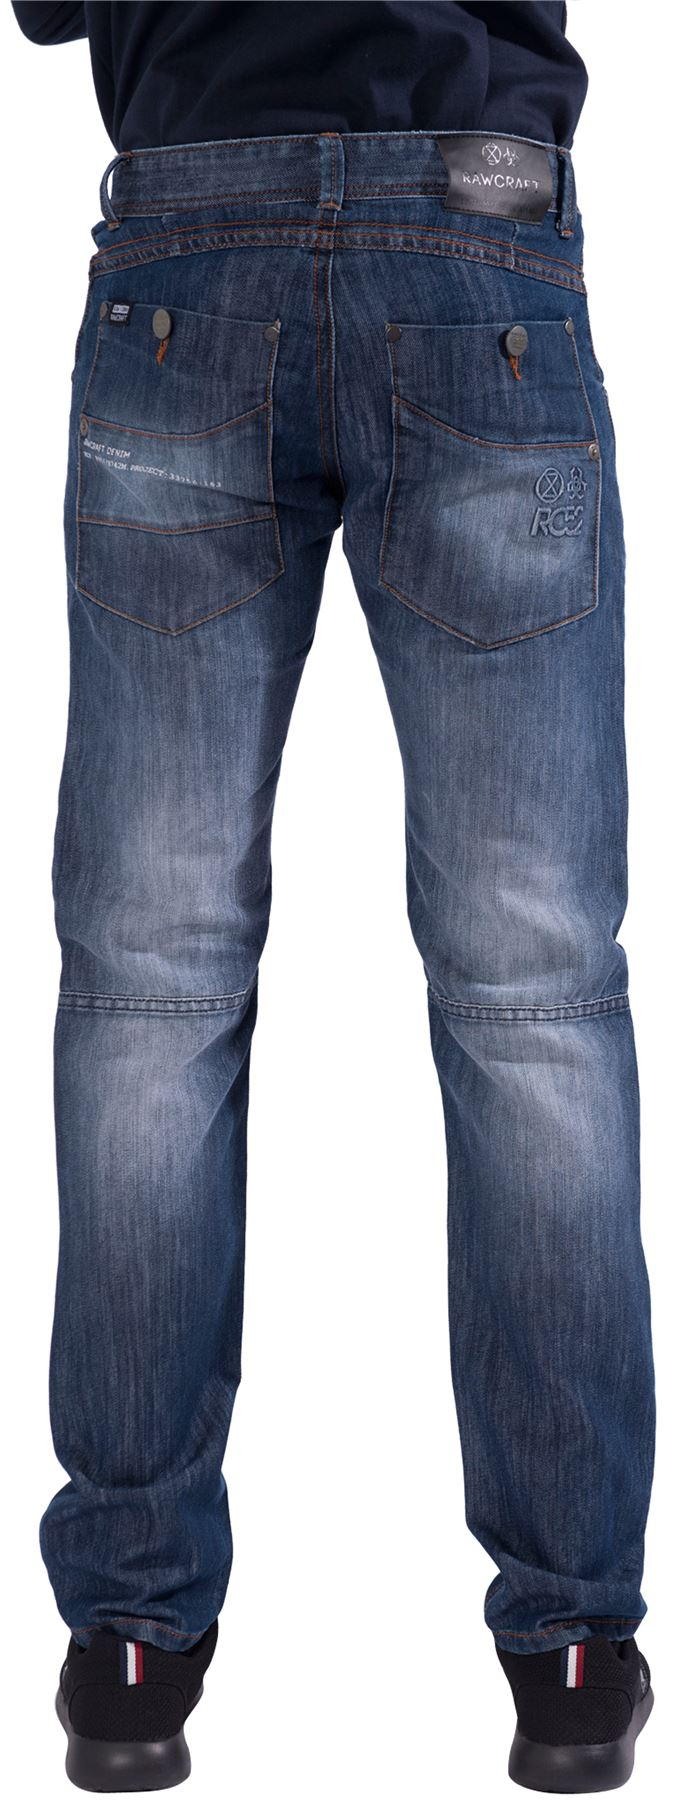 Free shipping on men's jeans at Nordstrom. Shop skinny, straight, relaxed and boot cut jeans for men by AG Jeans, Seven and Levi's. 7 For All Mankind® Austyn Relaxed Straight Leg Jeans (Los Angeles Dark) $ (36) Levi's® ™ Straight Leg Jeans. $ (2) CELLAR; (30) The Unbranded Brand UB Tapered Fit Raw Selvedge Jeans.